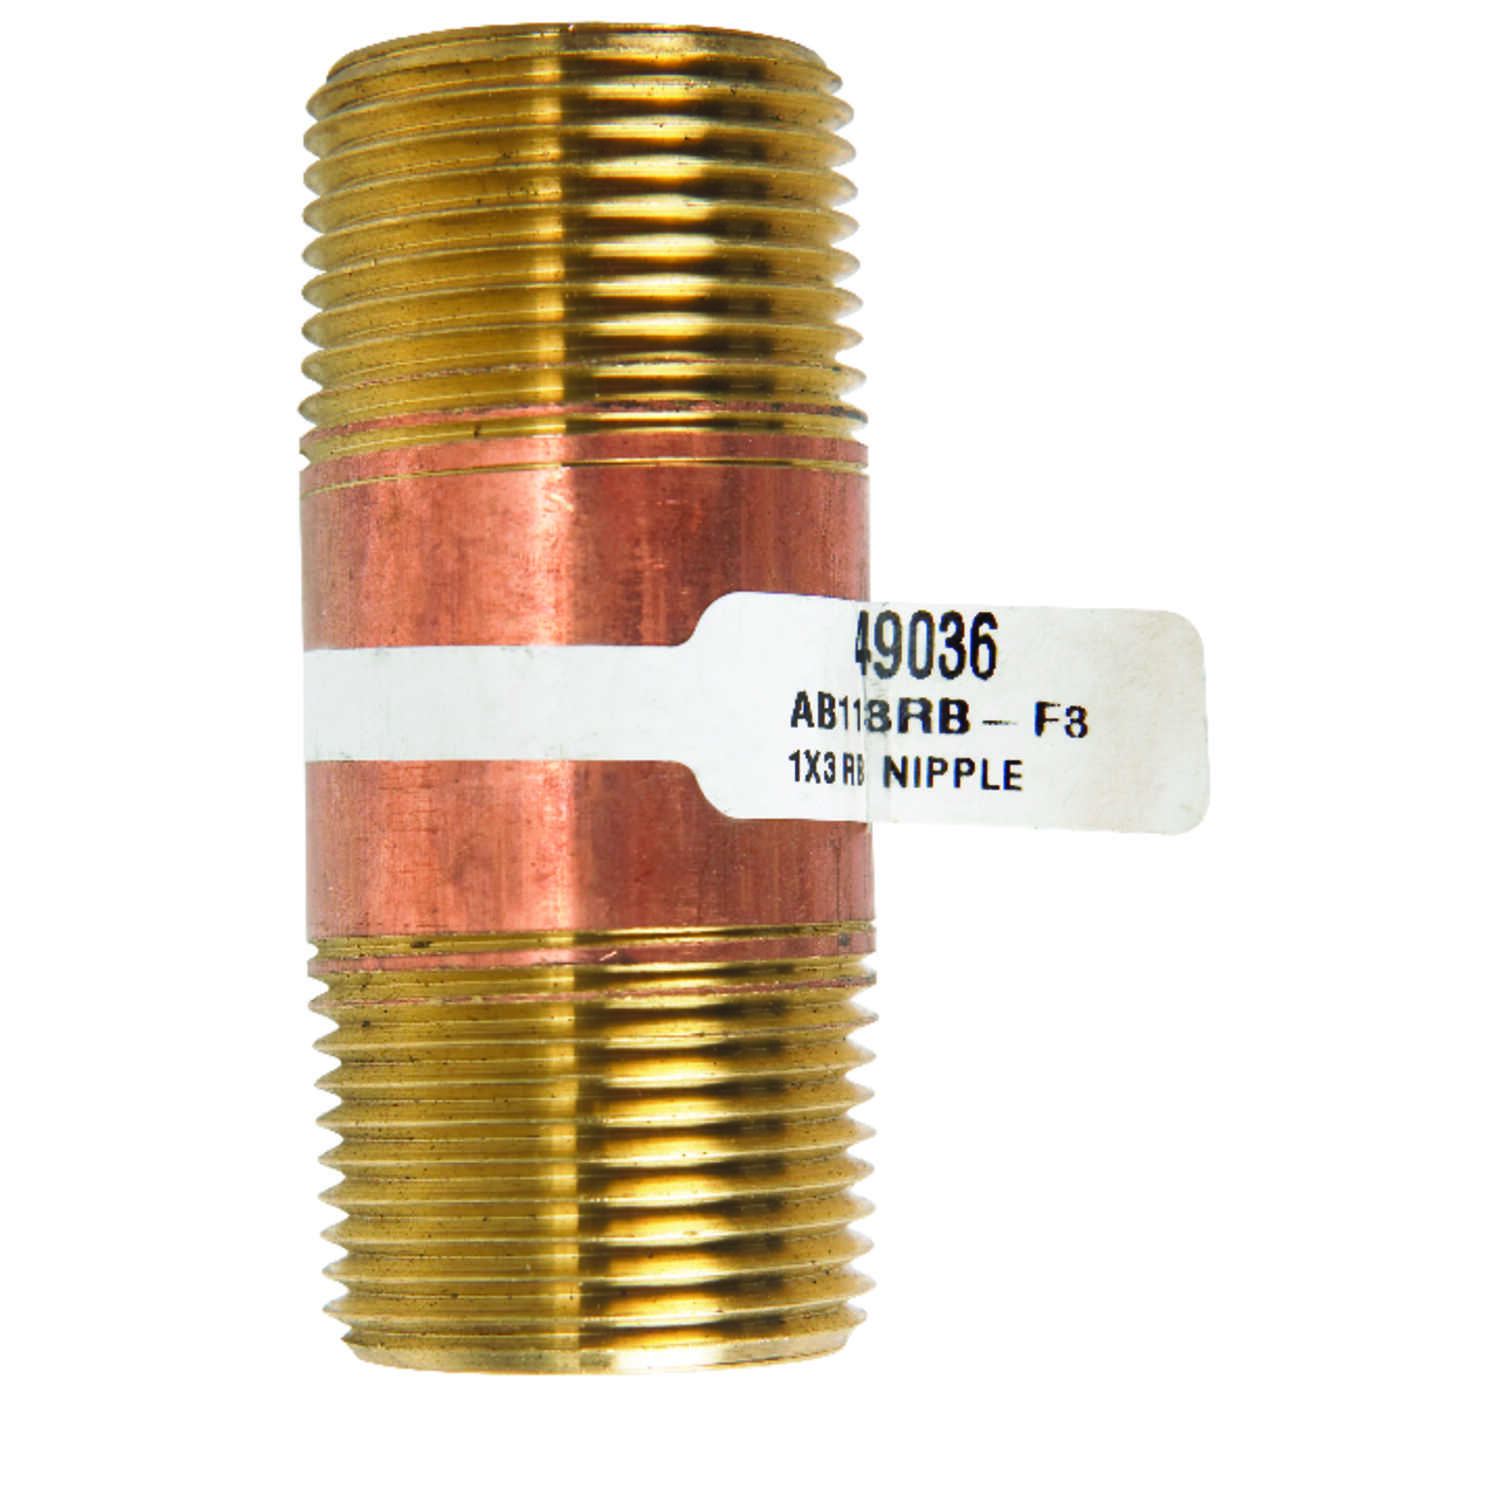 JMF  1  MPT To MPT To Nipple  1 in. Dia. Red Brass  Pipe Nipple